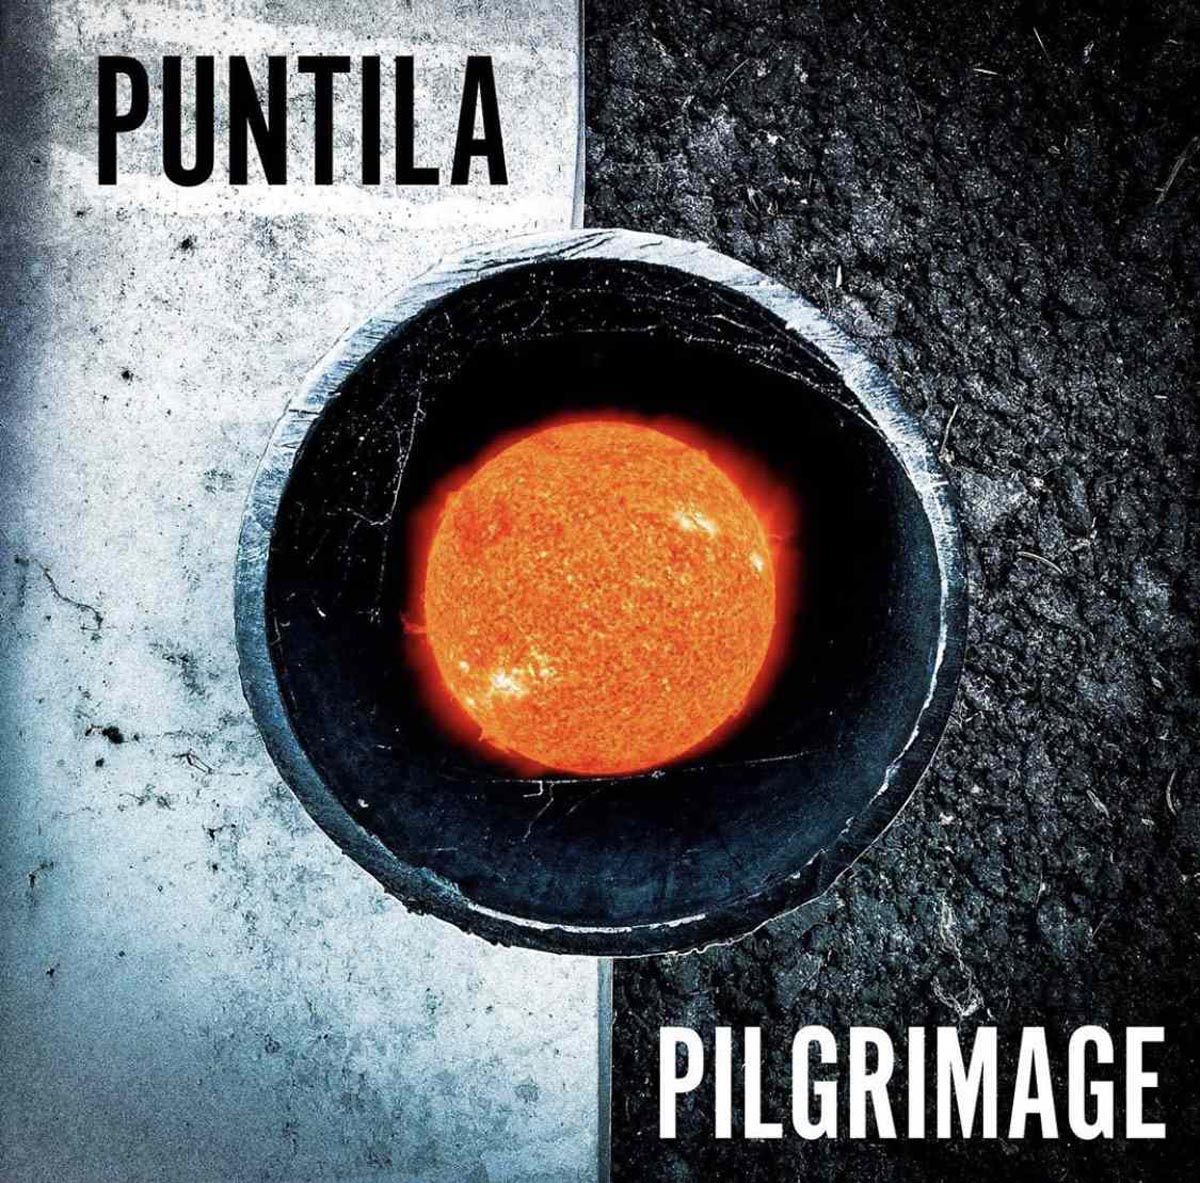 (COVER: Tuomo Puntila) PILGRIMAGE is the debut album of Tuomo Puntila, with five self-written groovy rock songs.